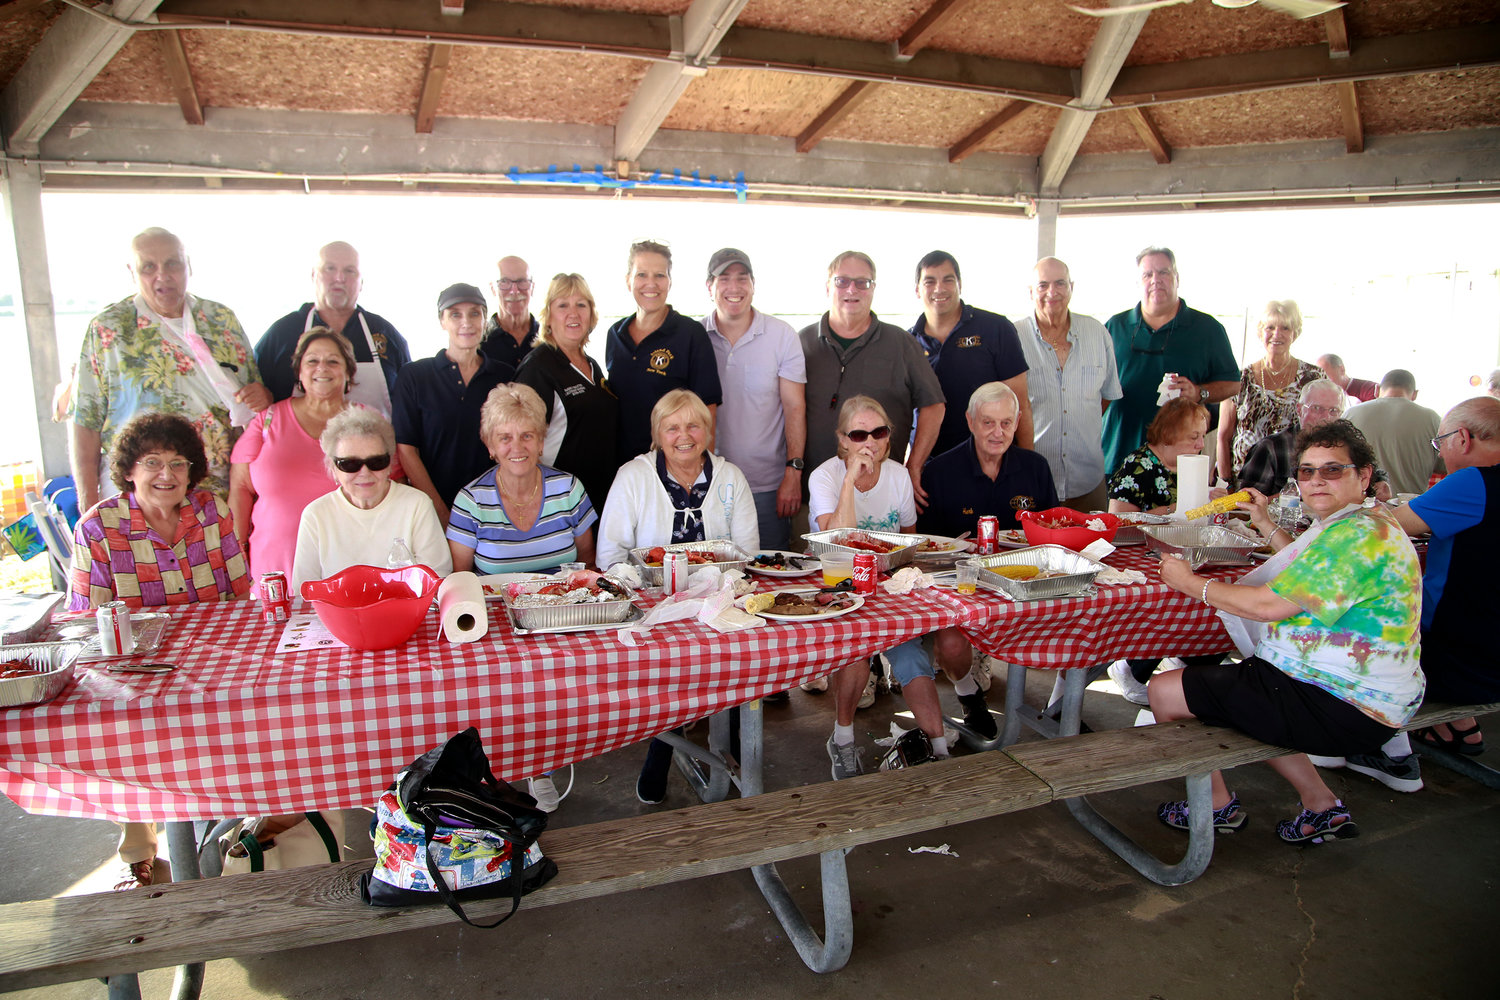 The Island Park Kiwanis Club hosted its annual steak and lobster bake at Masone Beach on Friday.